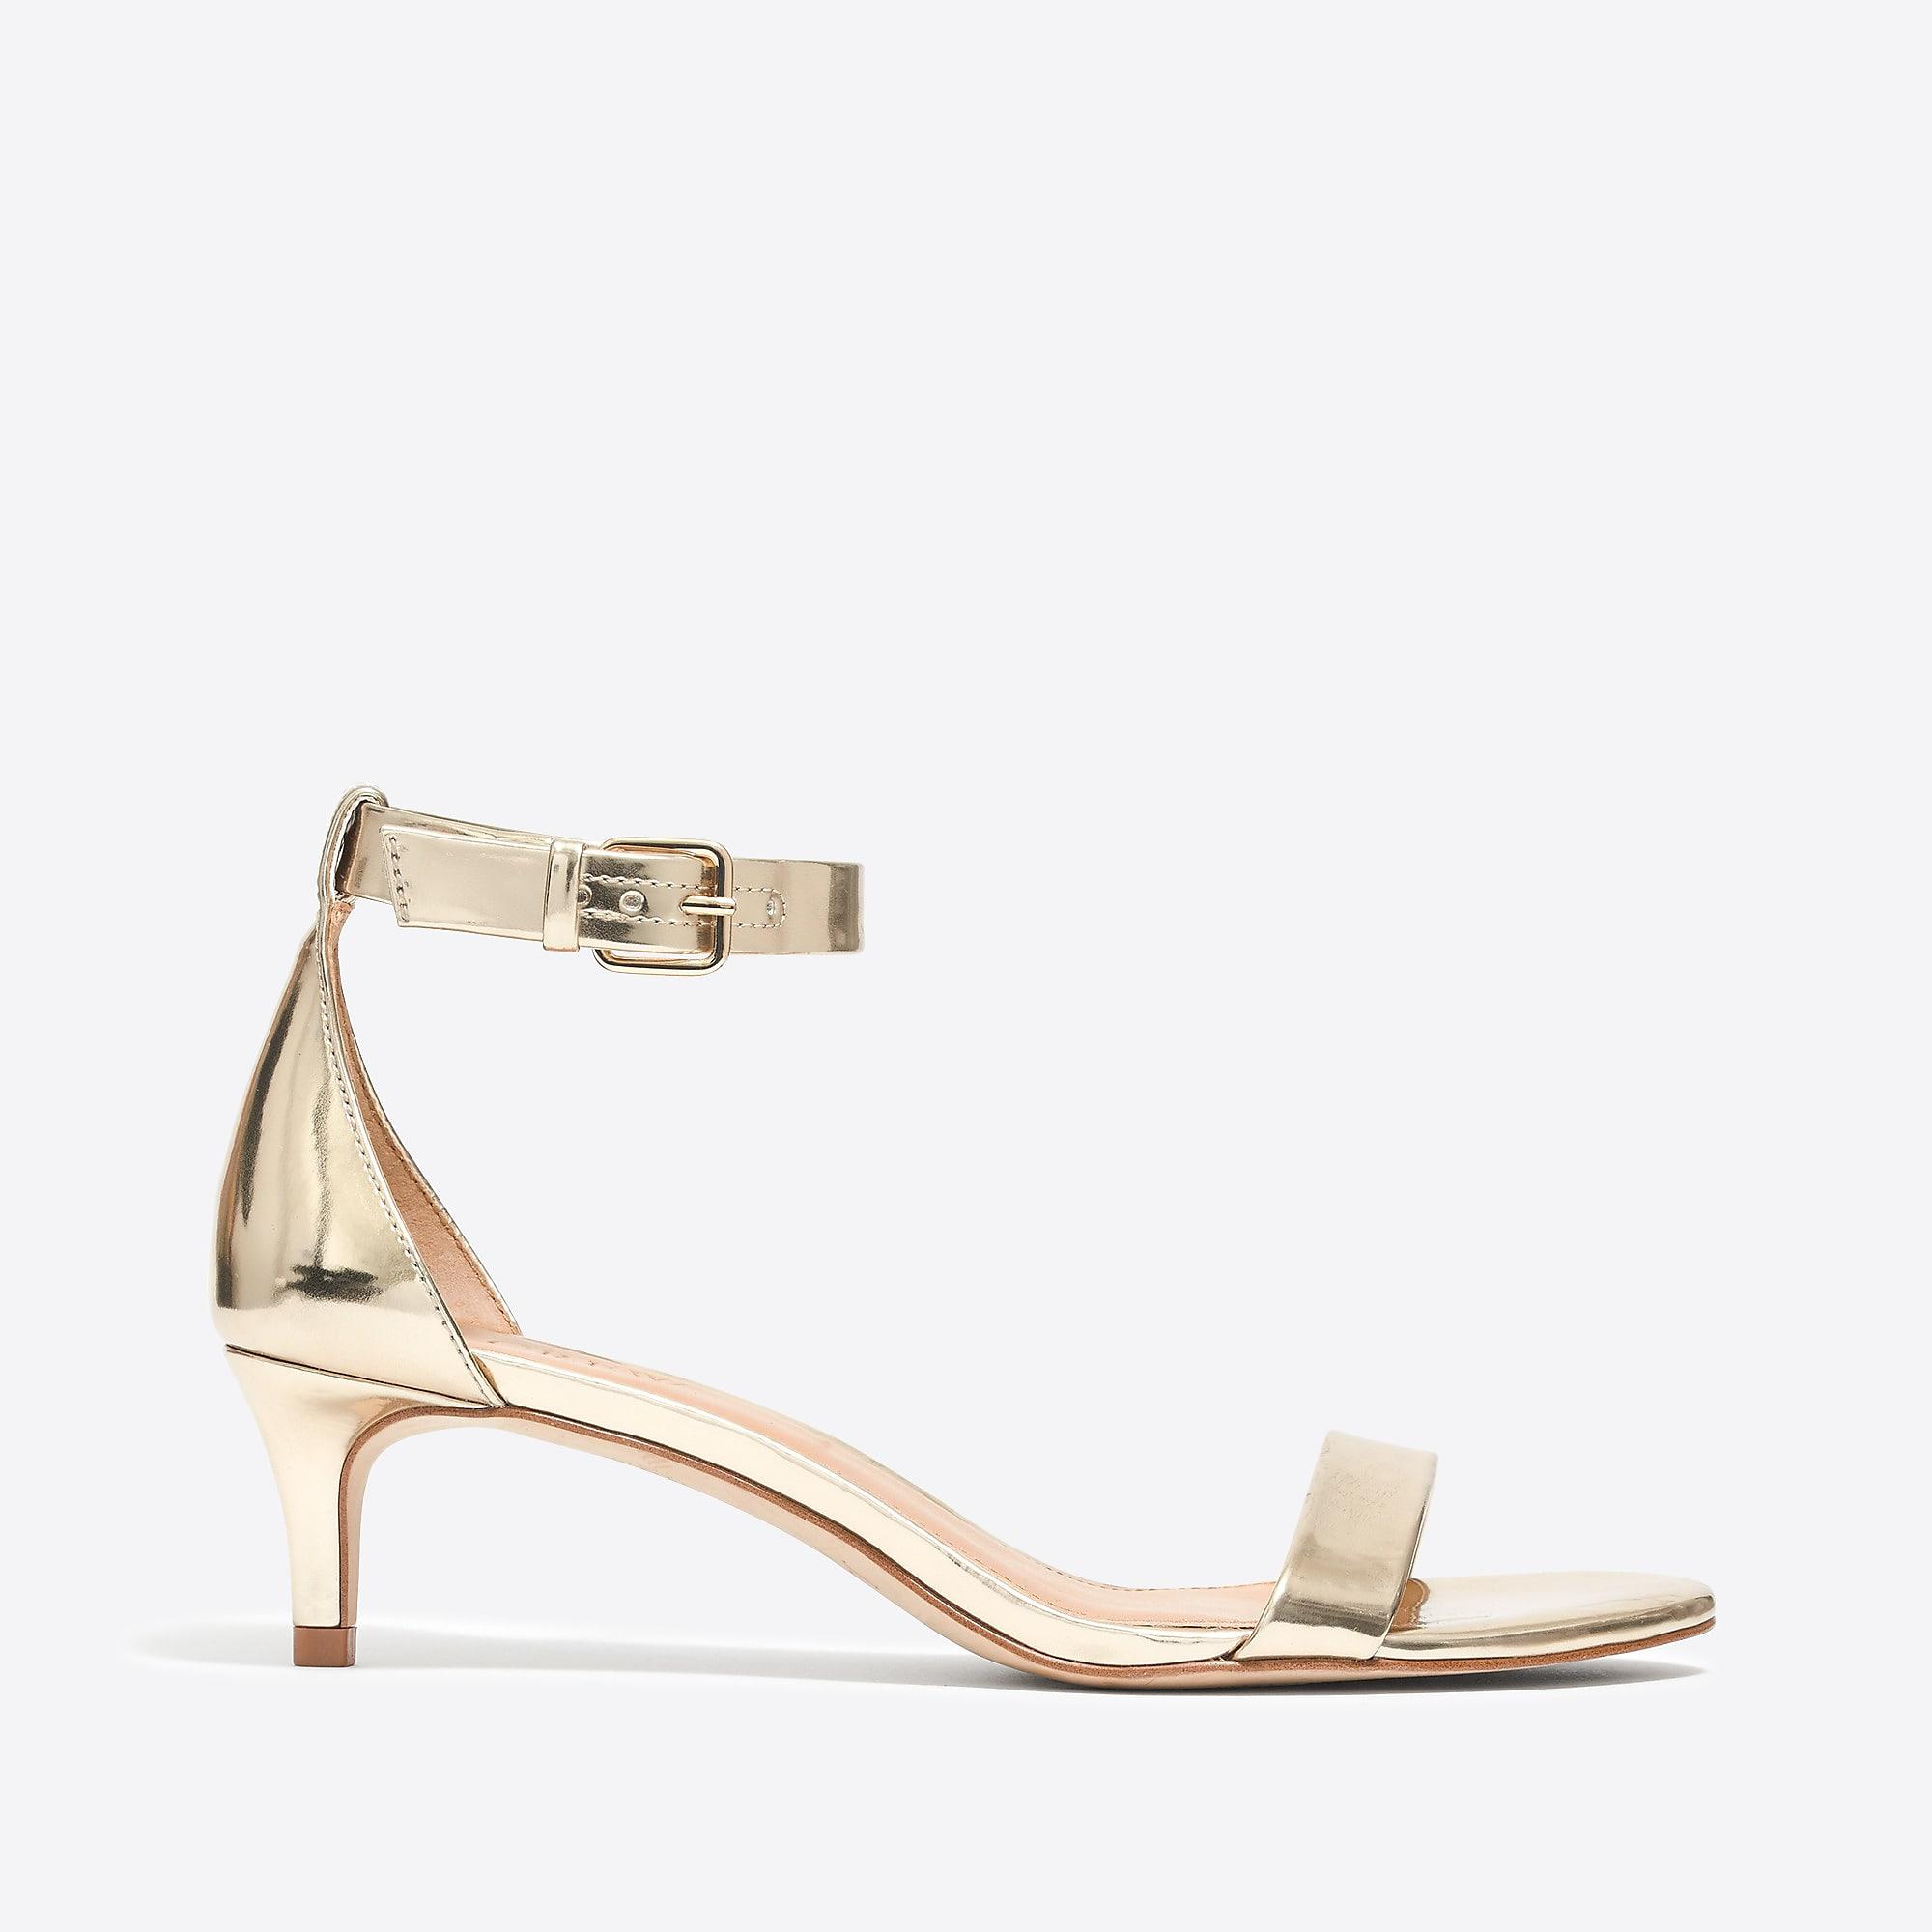 3a2f541fae04 J.Crew - Metallic Kitten-heel Sandals - Lyst. View fullscreen